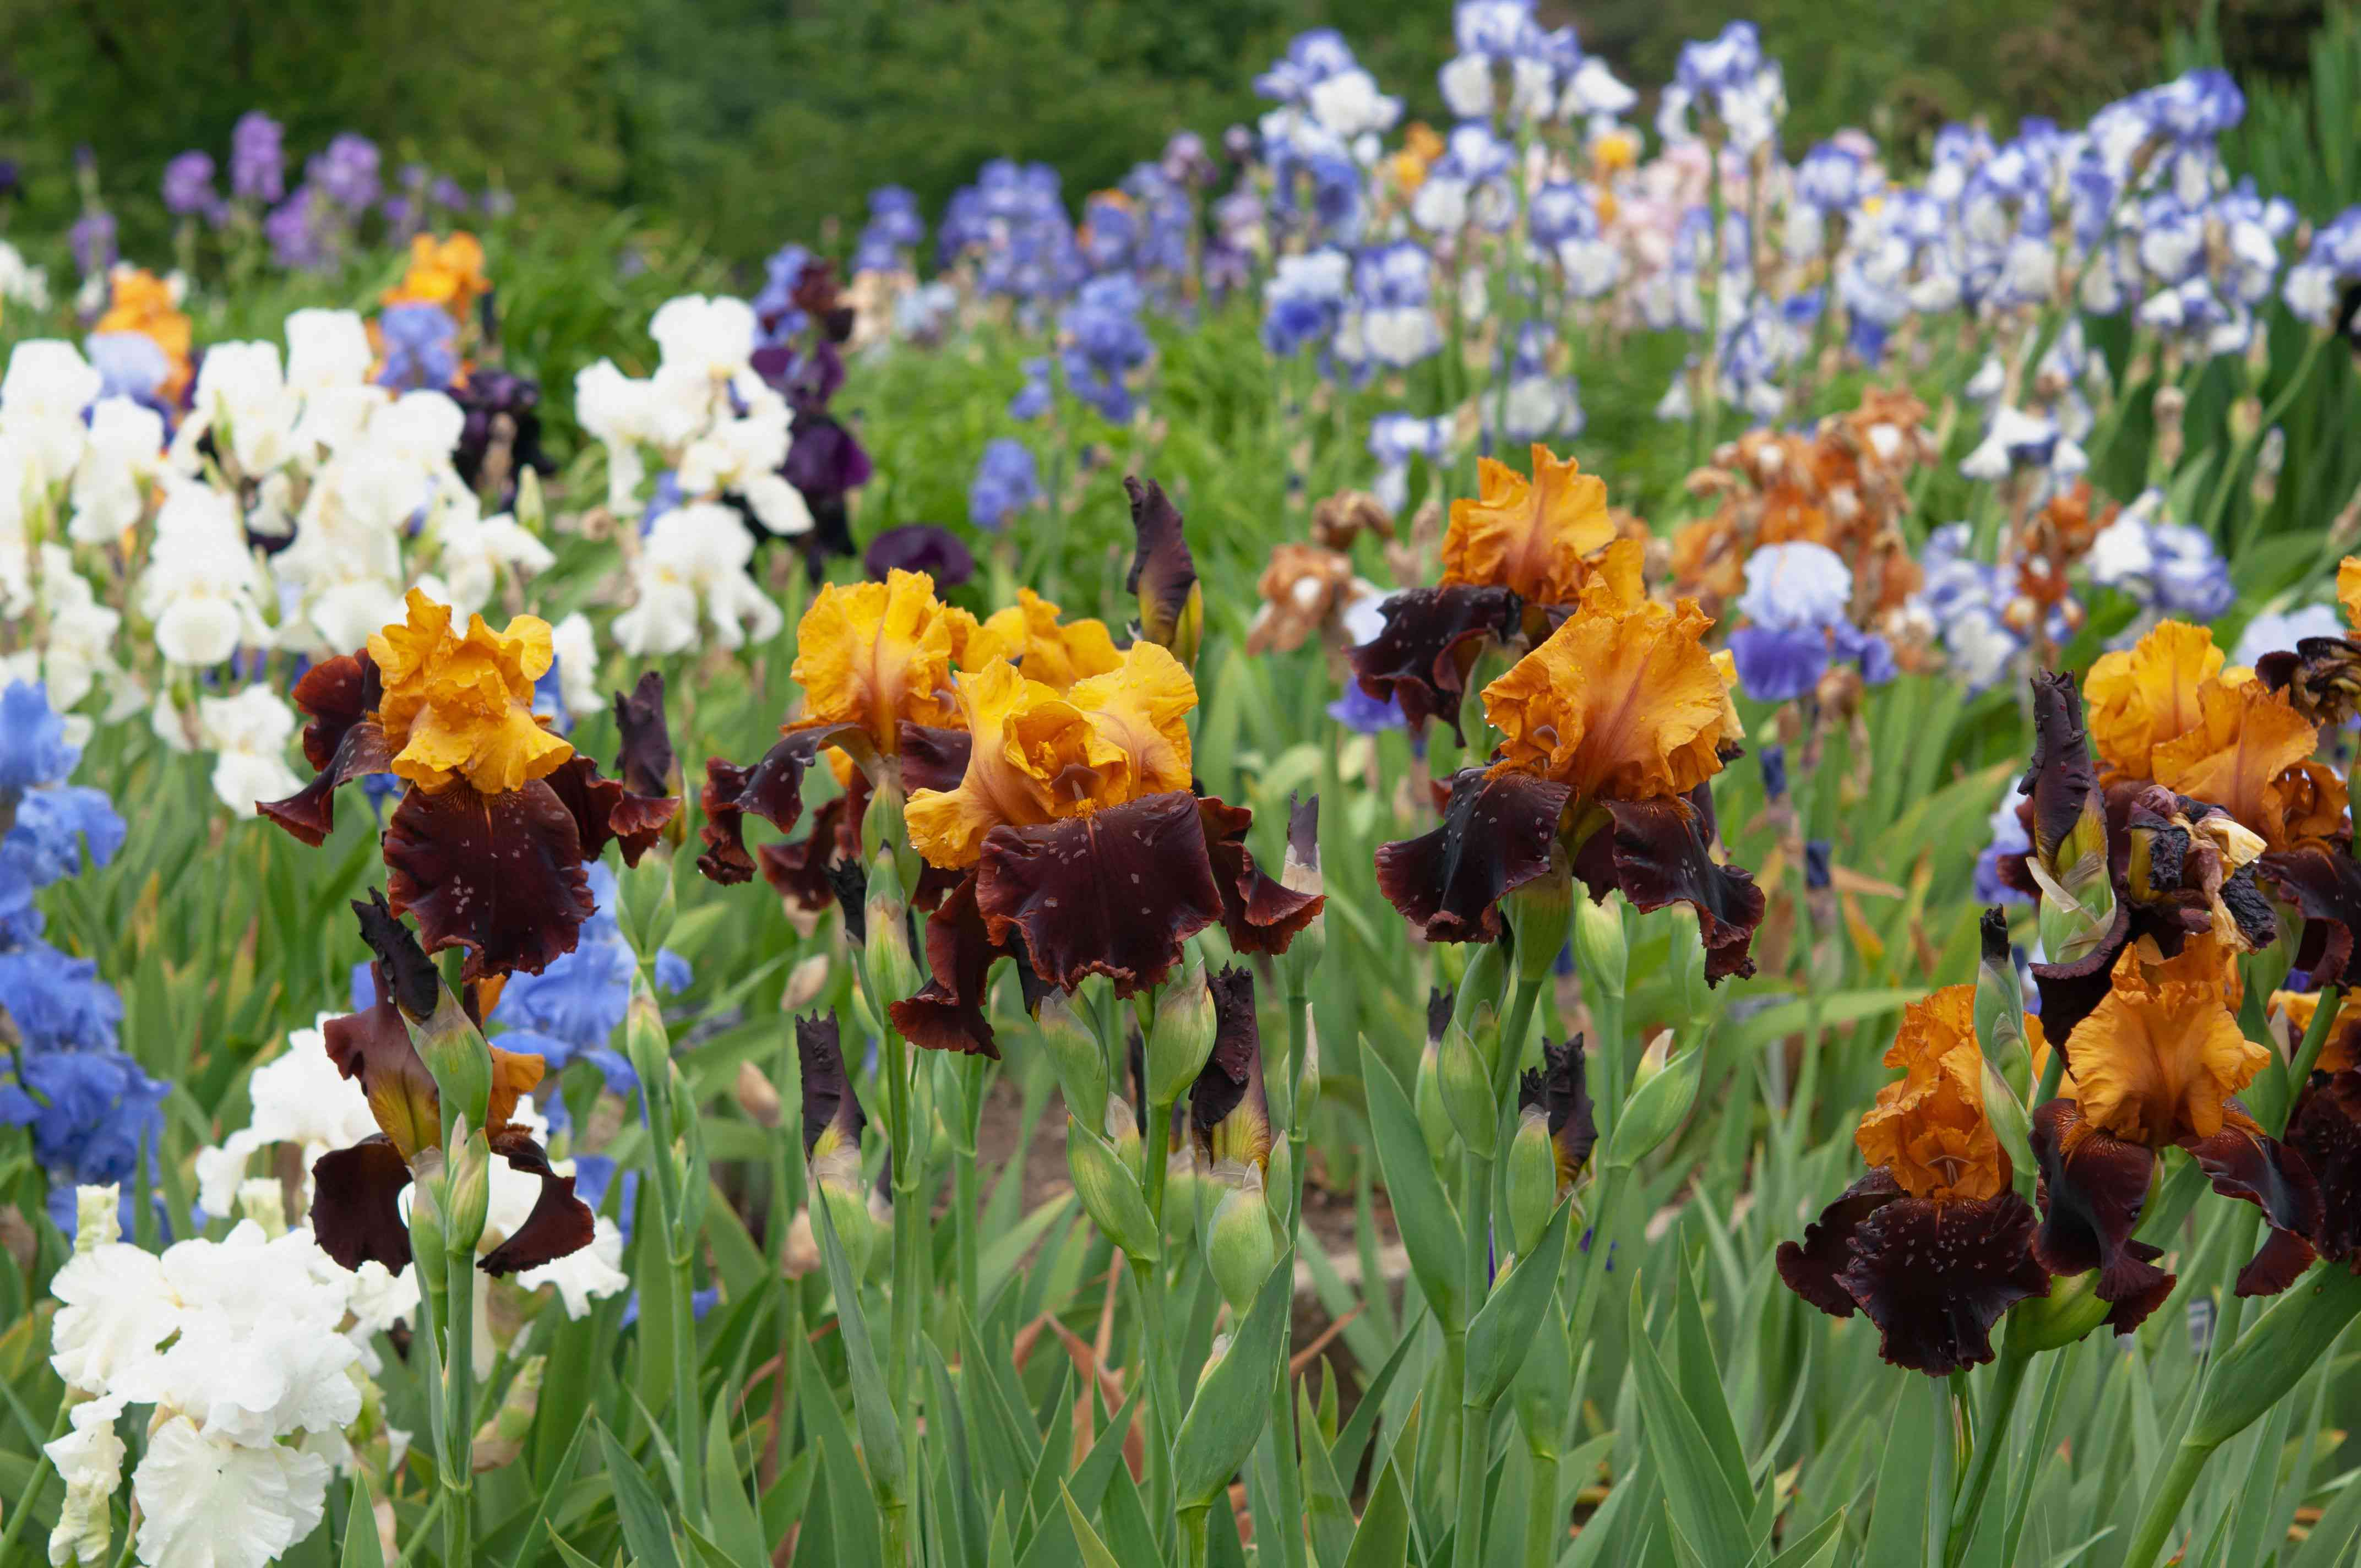 Bearded iris flowers with orange, dark red, white and blue colored petals in garden